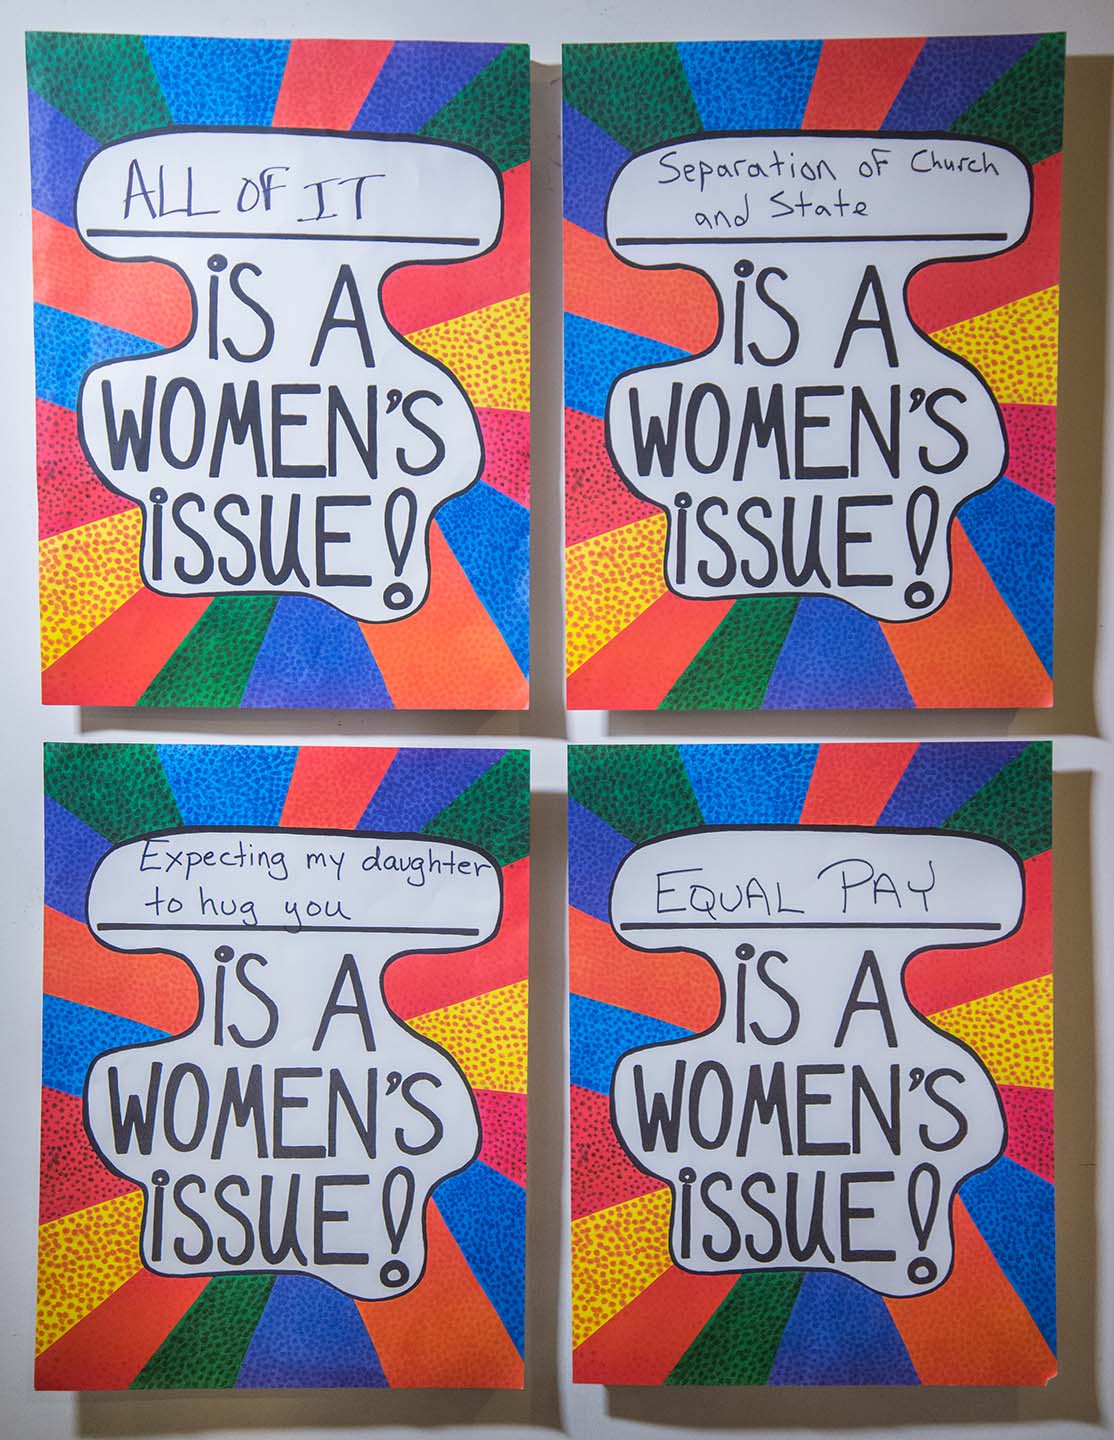 All of It Is a Women's Issue!